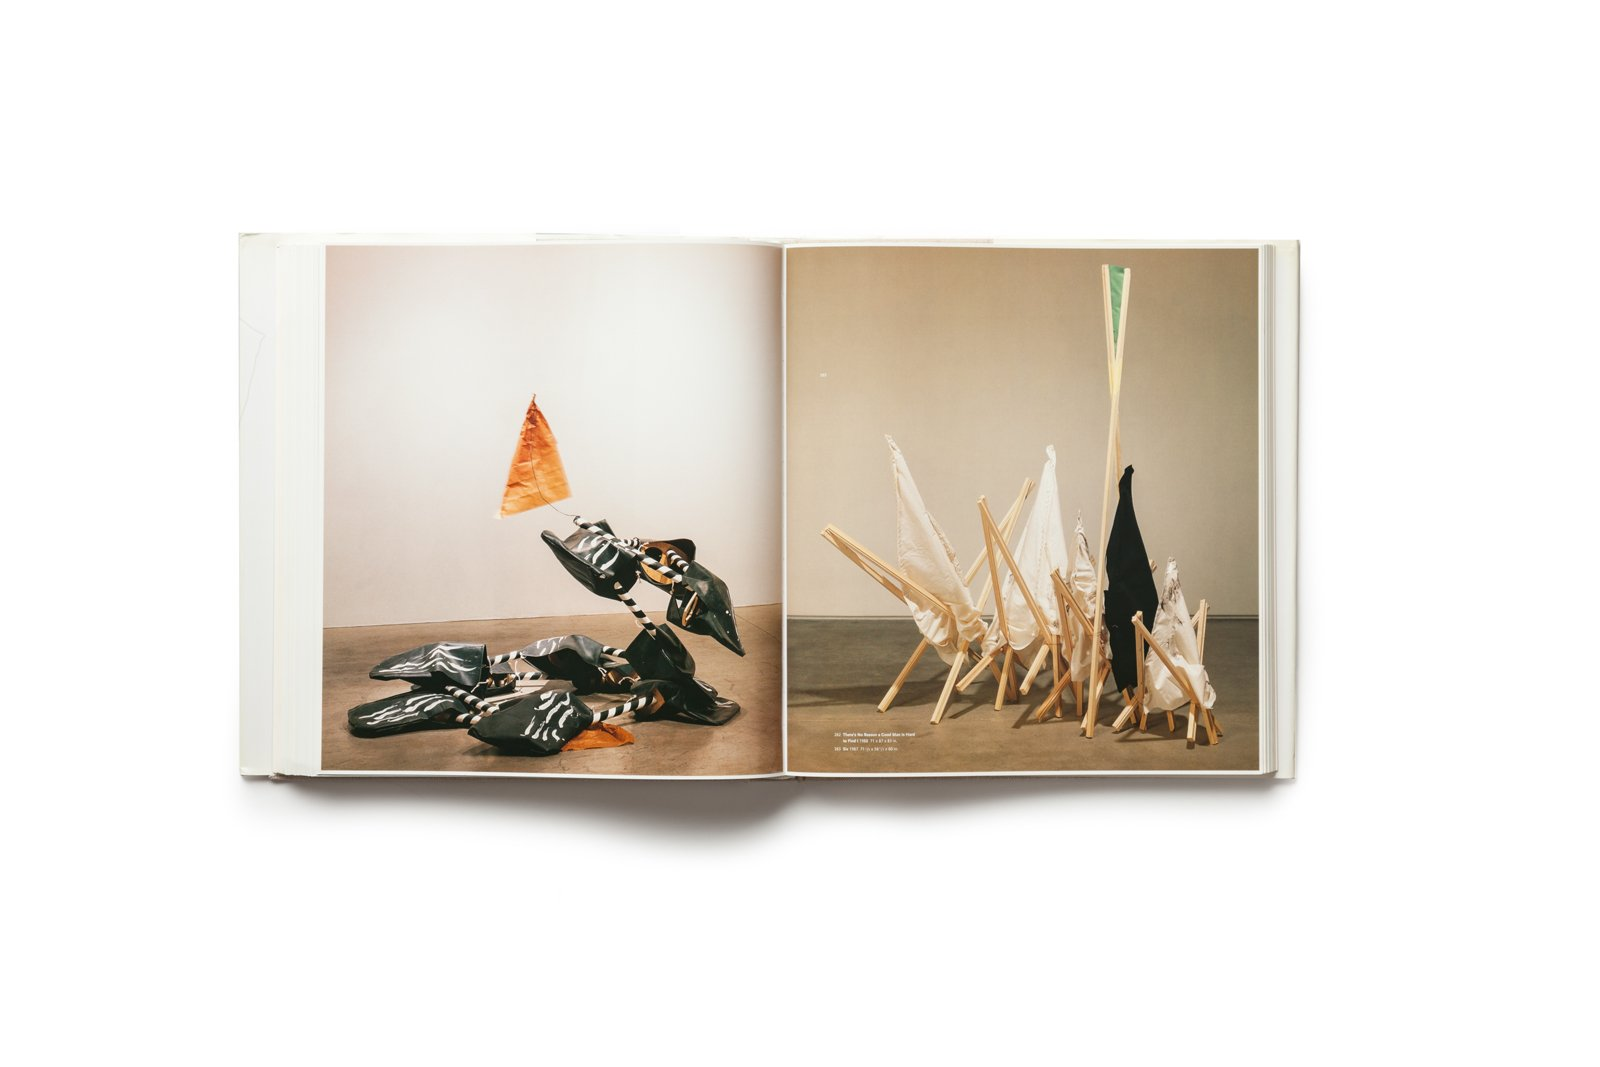 The Art of Richard Tuttle publication plates 262-263